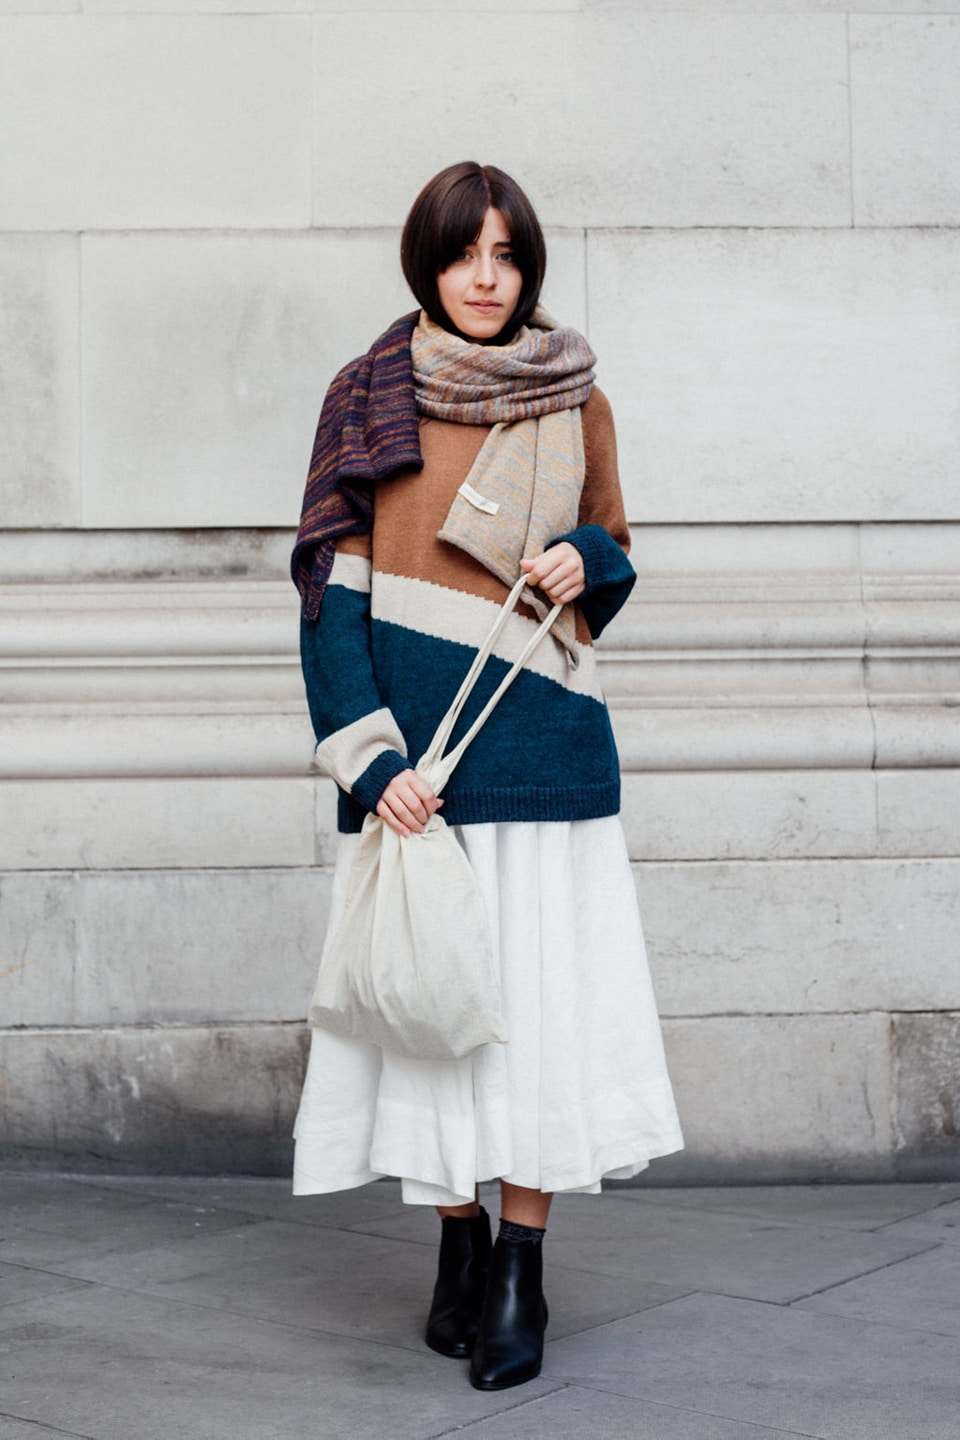 Besma wears white dress with multi jumper, scarf, and tote bag